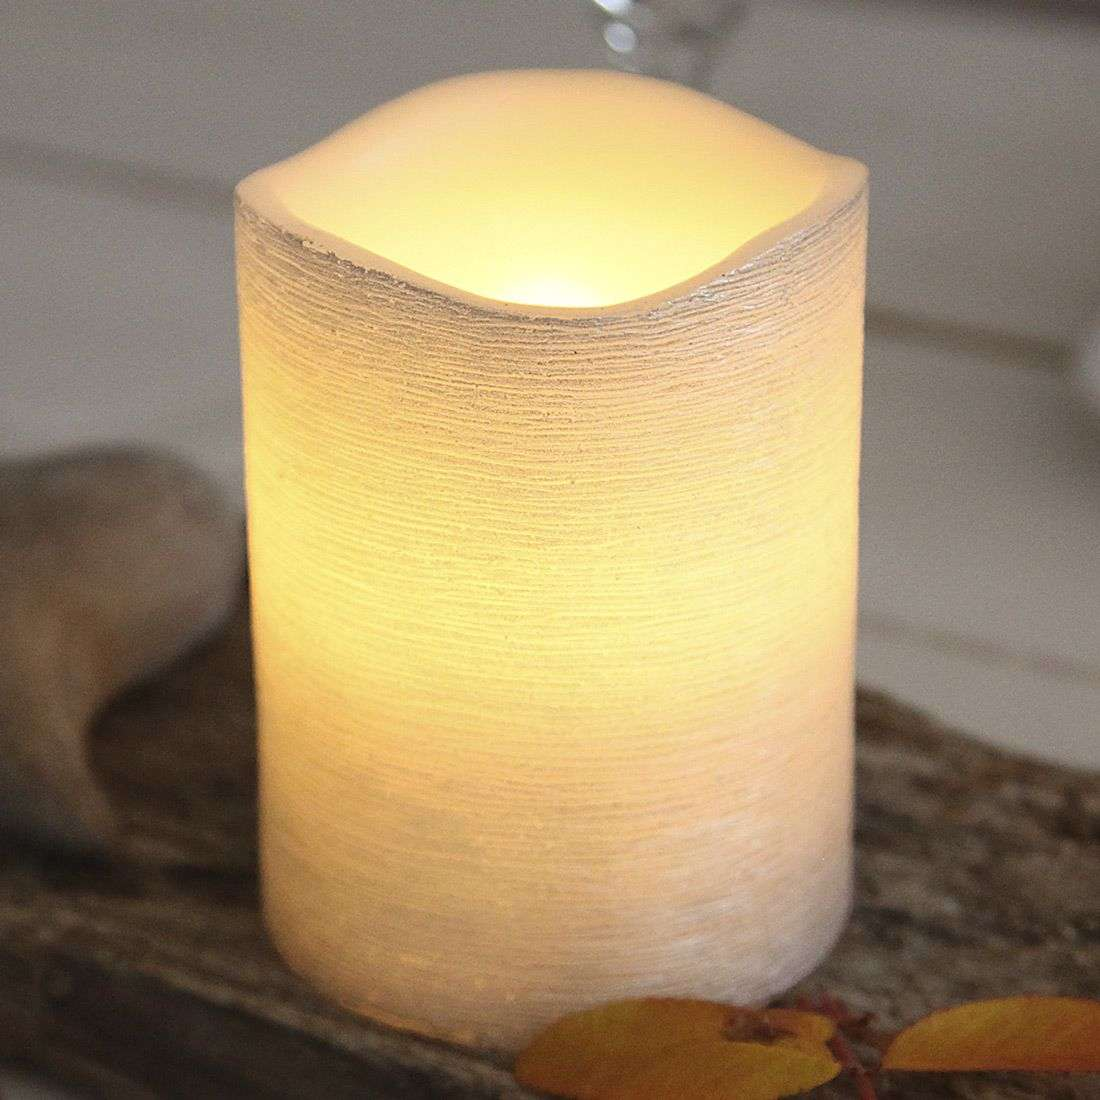 White real waxLED candle Linda structured 10cm-1522547-31